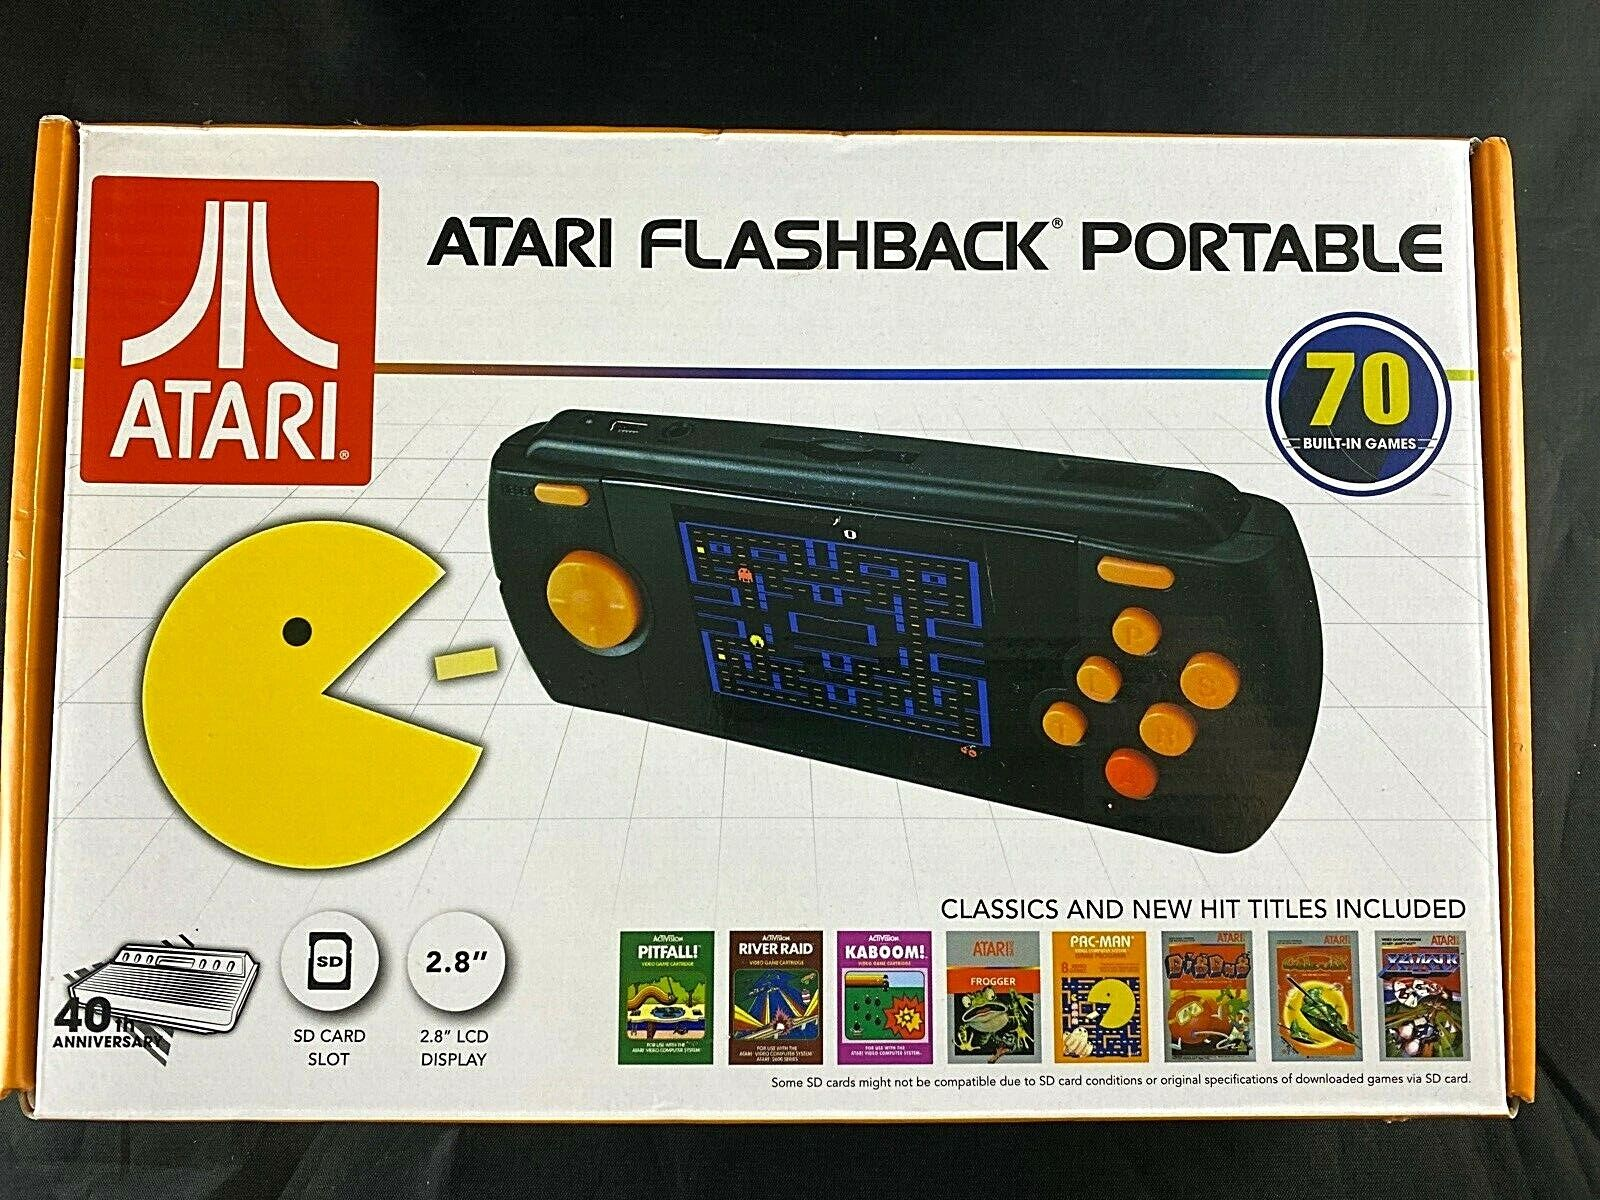 Atari Flashback Portable Game Player 2017 with 70 Built-in Games